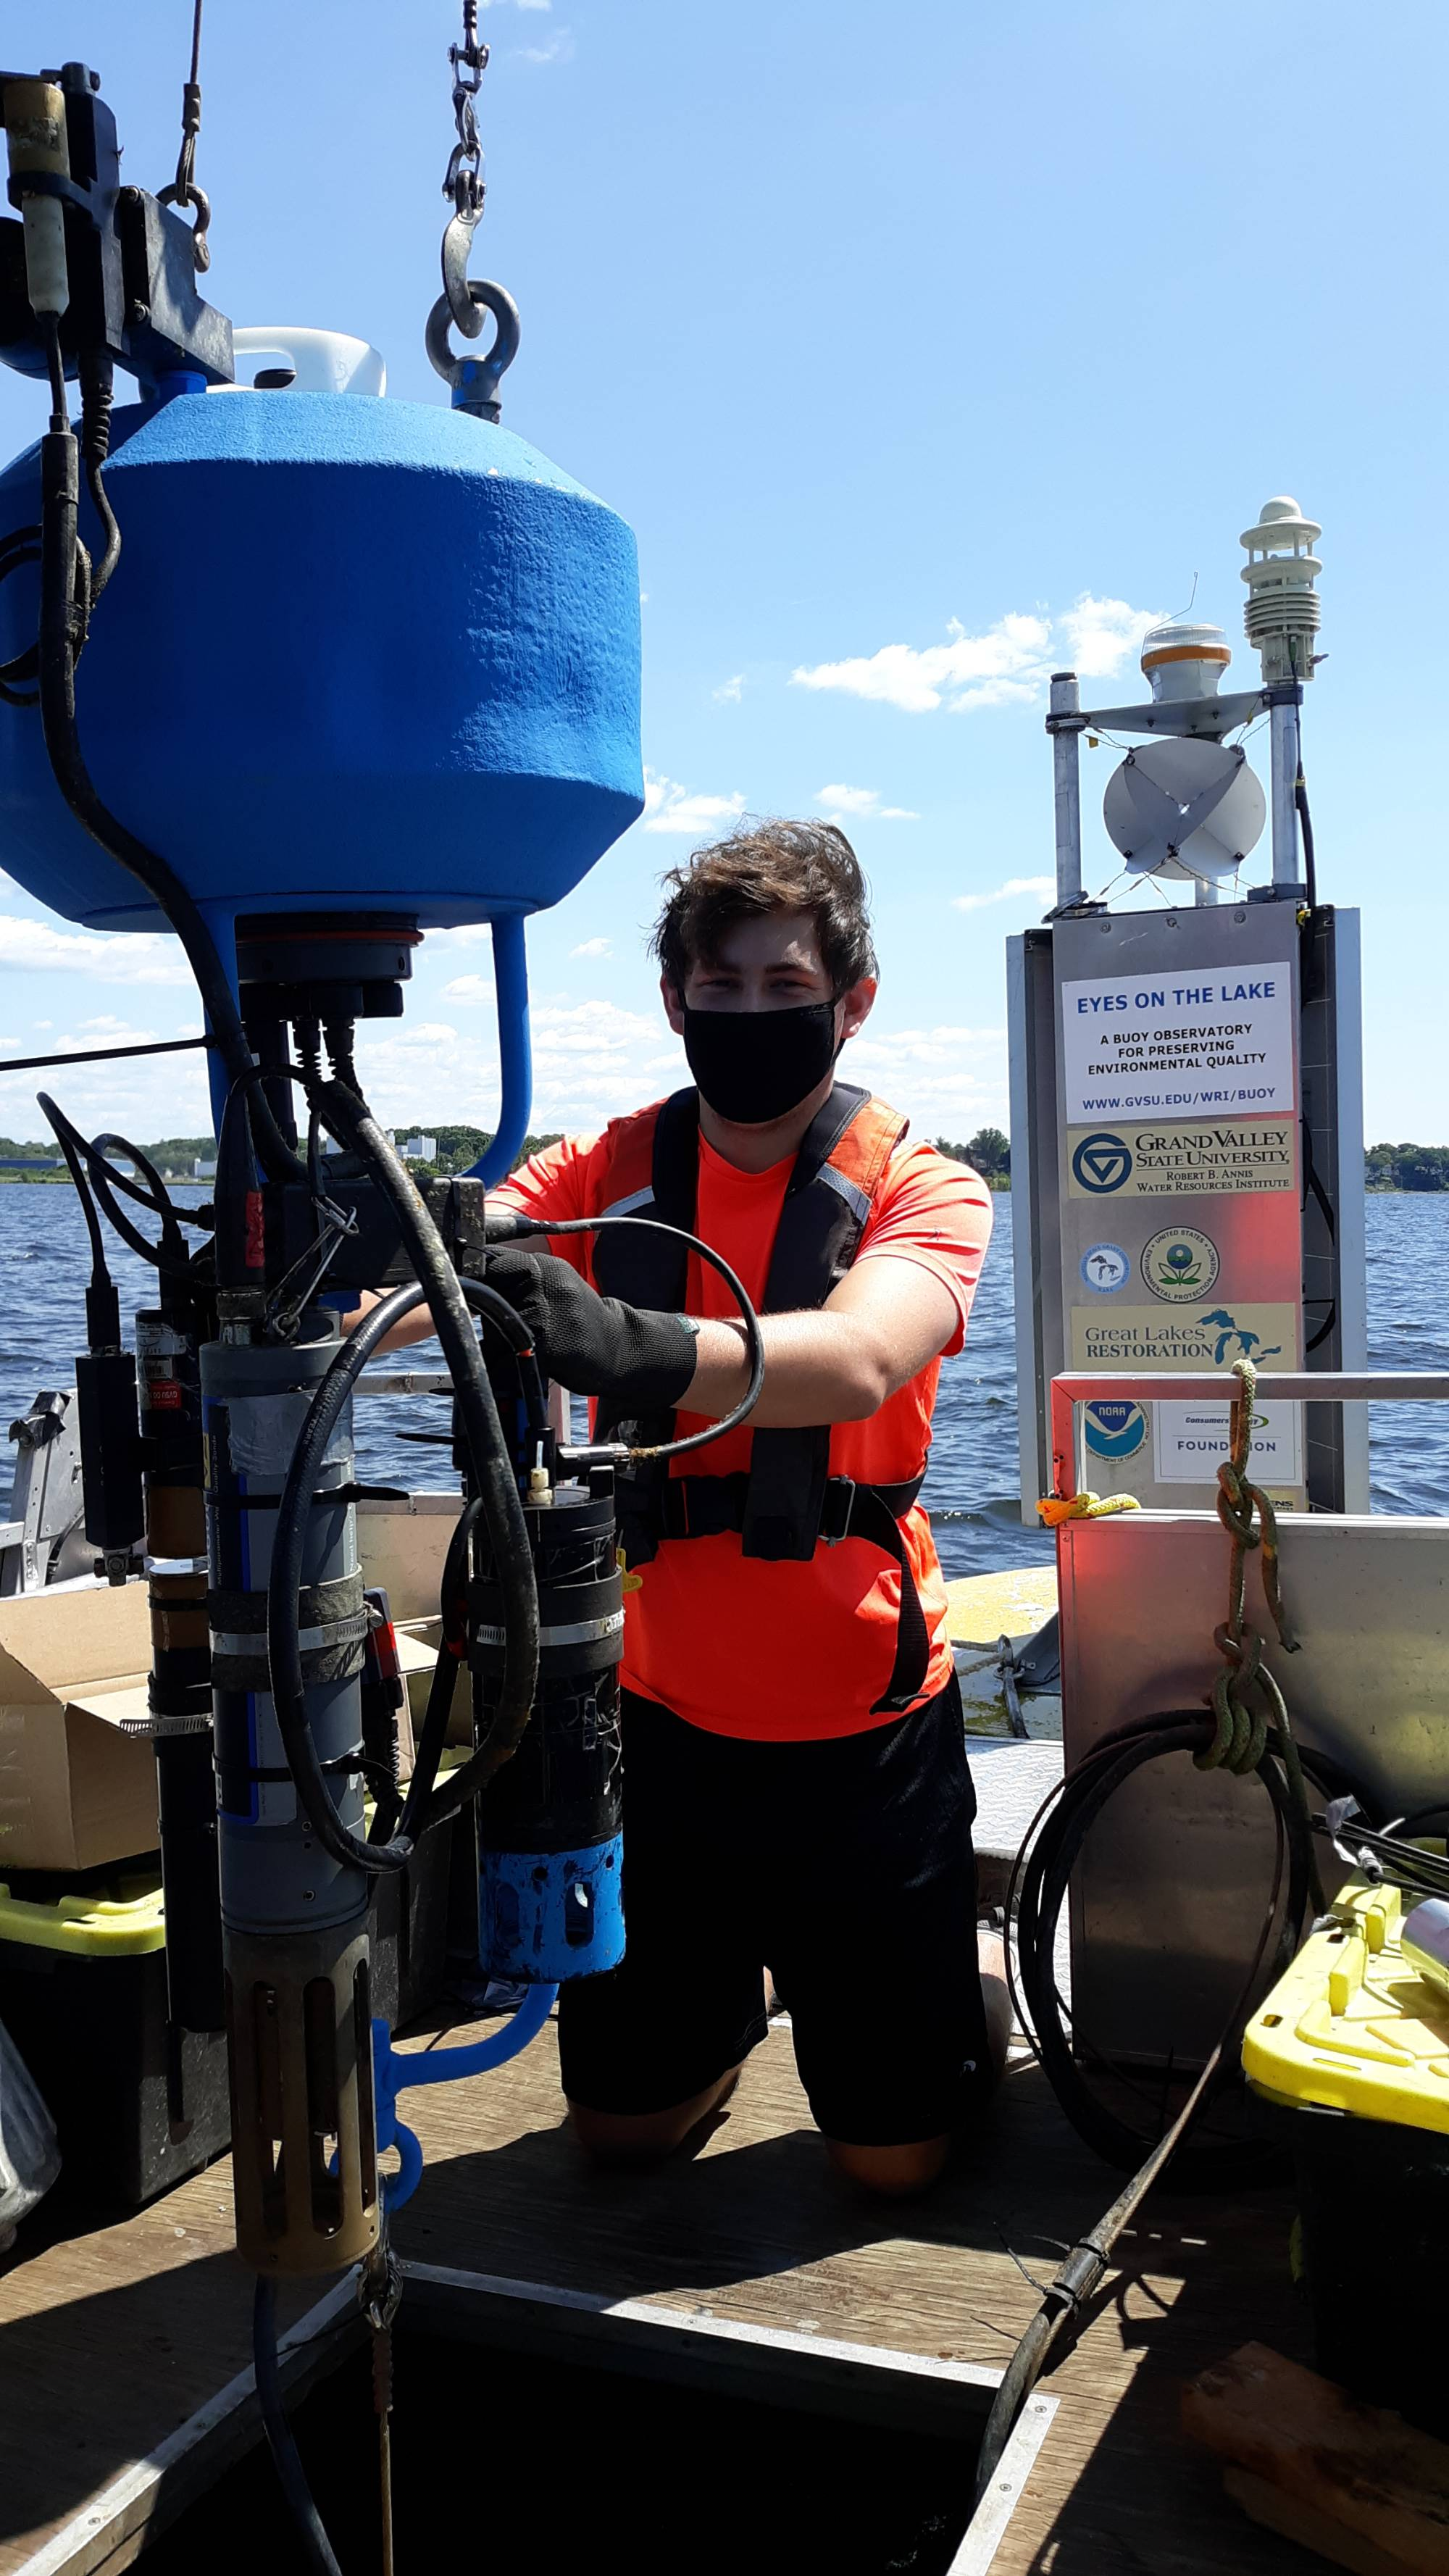 Nate Dugener tends to the buoy's underwater sensors